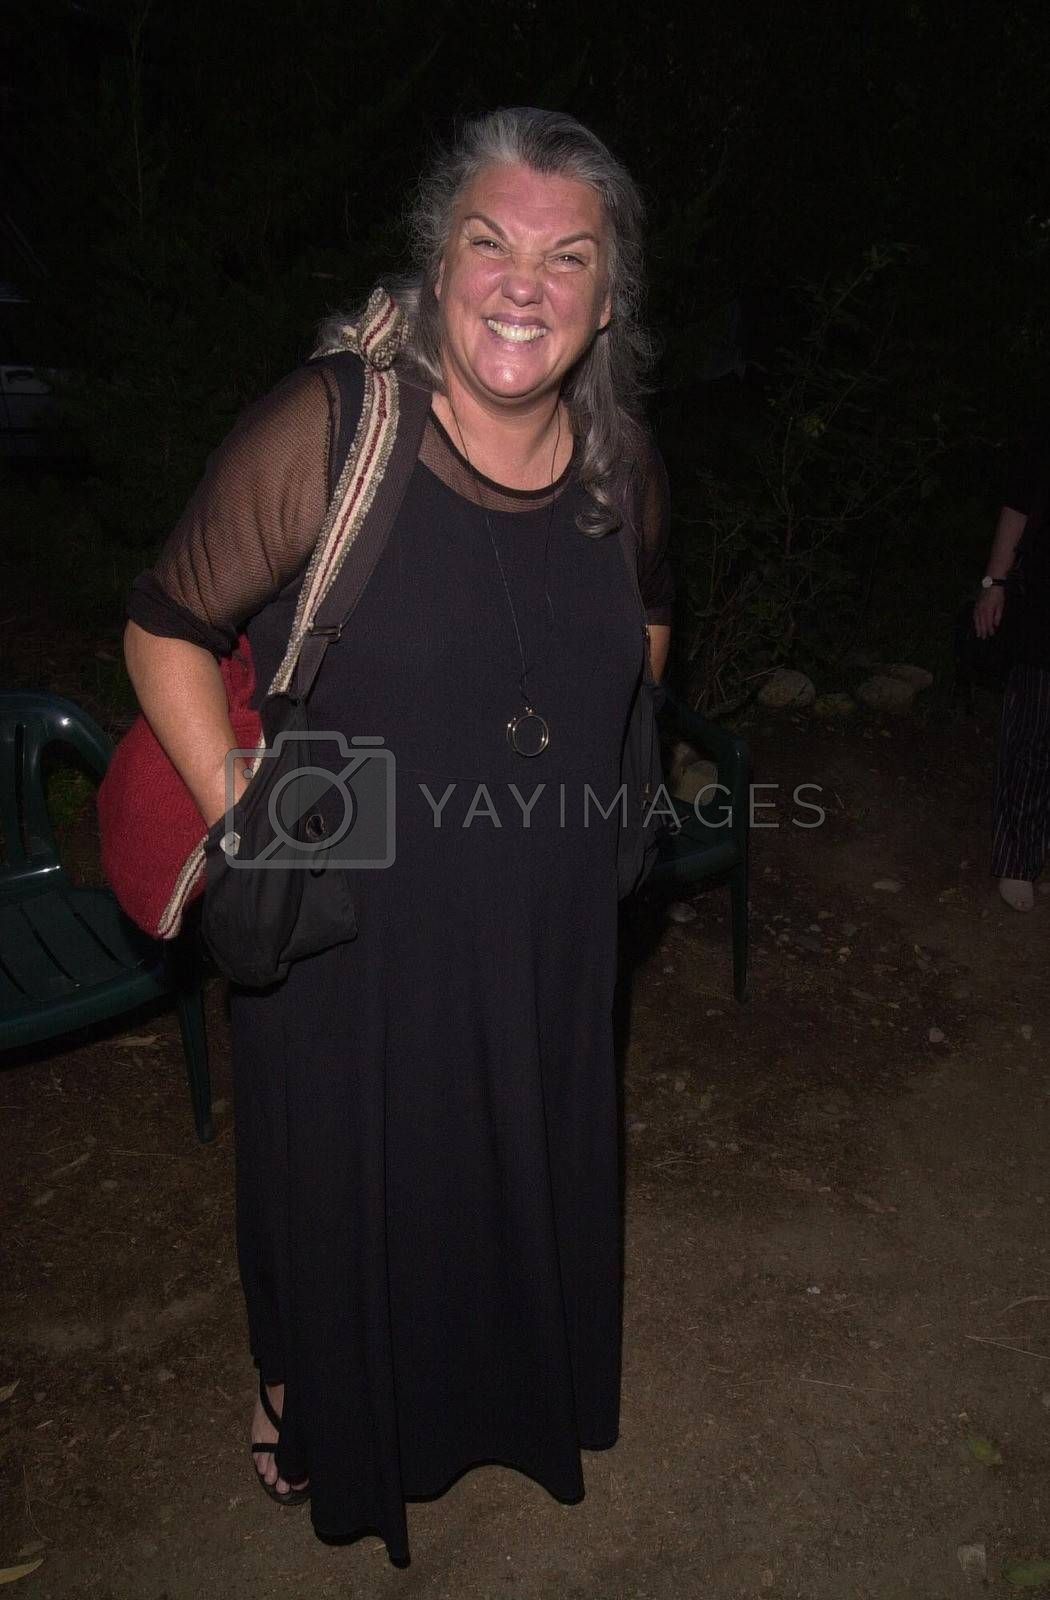 Tyne Daly at The Strength of Women at the Will Geer Theatricum Botanicum. 08-19-00